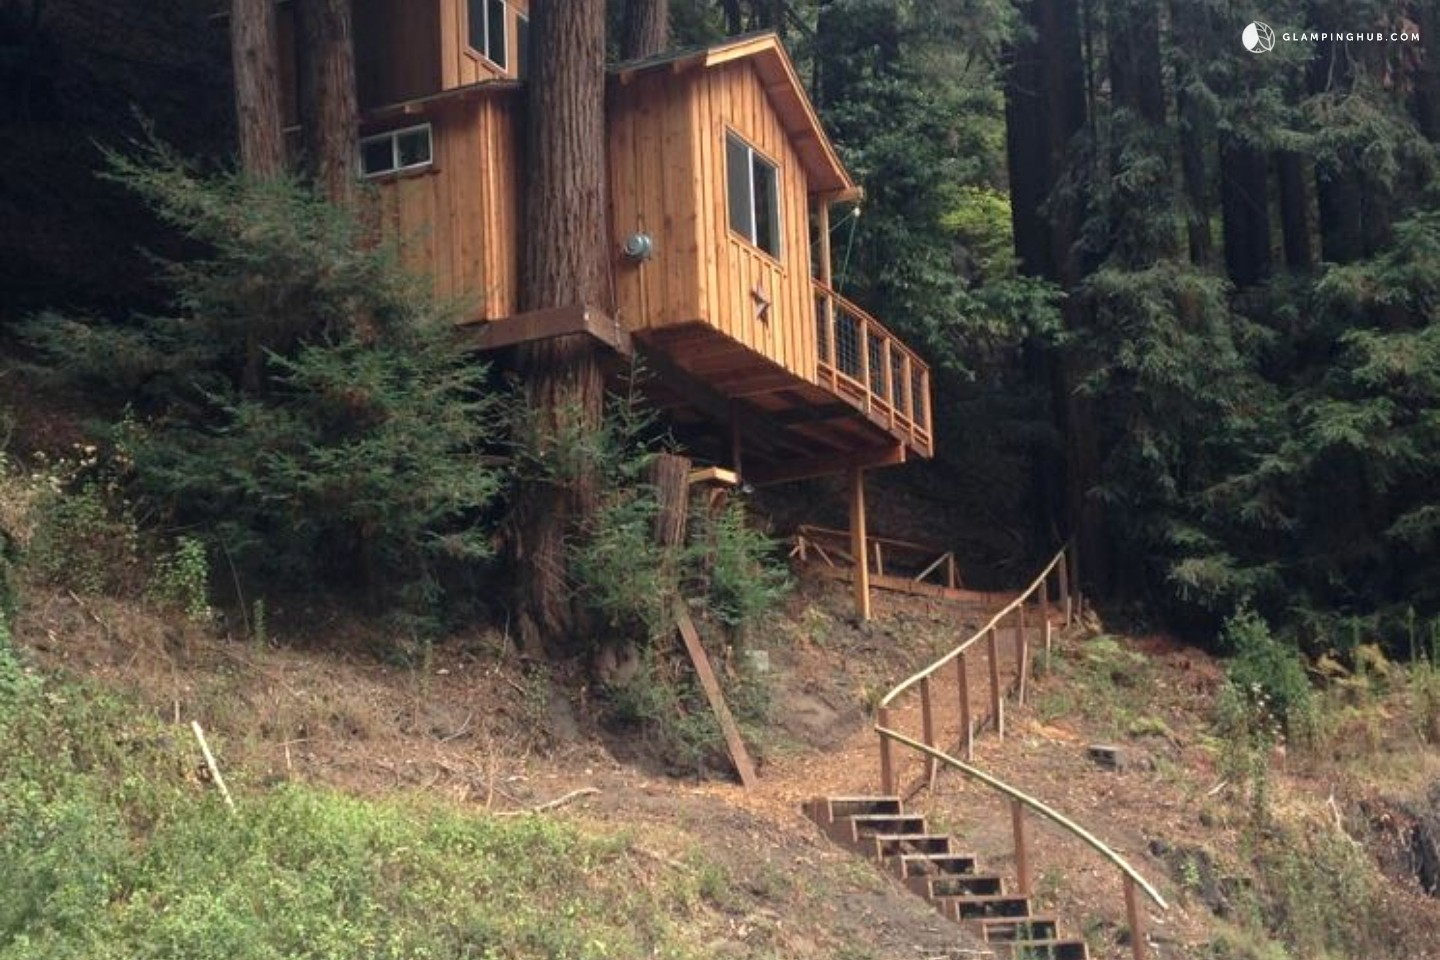 This Tiny Cabin In The Redwoods Is The Perfect Getaway For: Romantic Getaway In Redwoods Of Santa Cruz